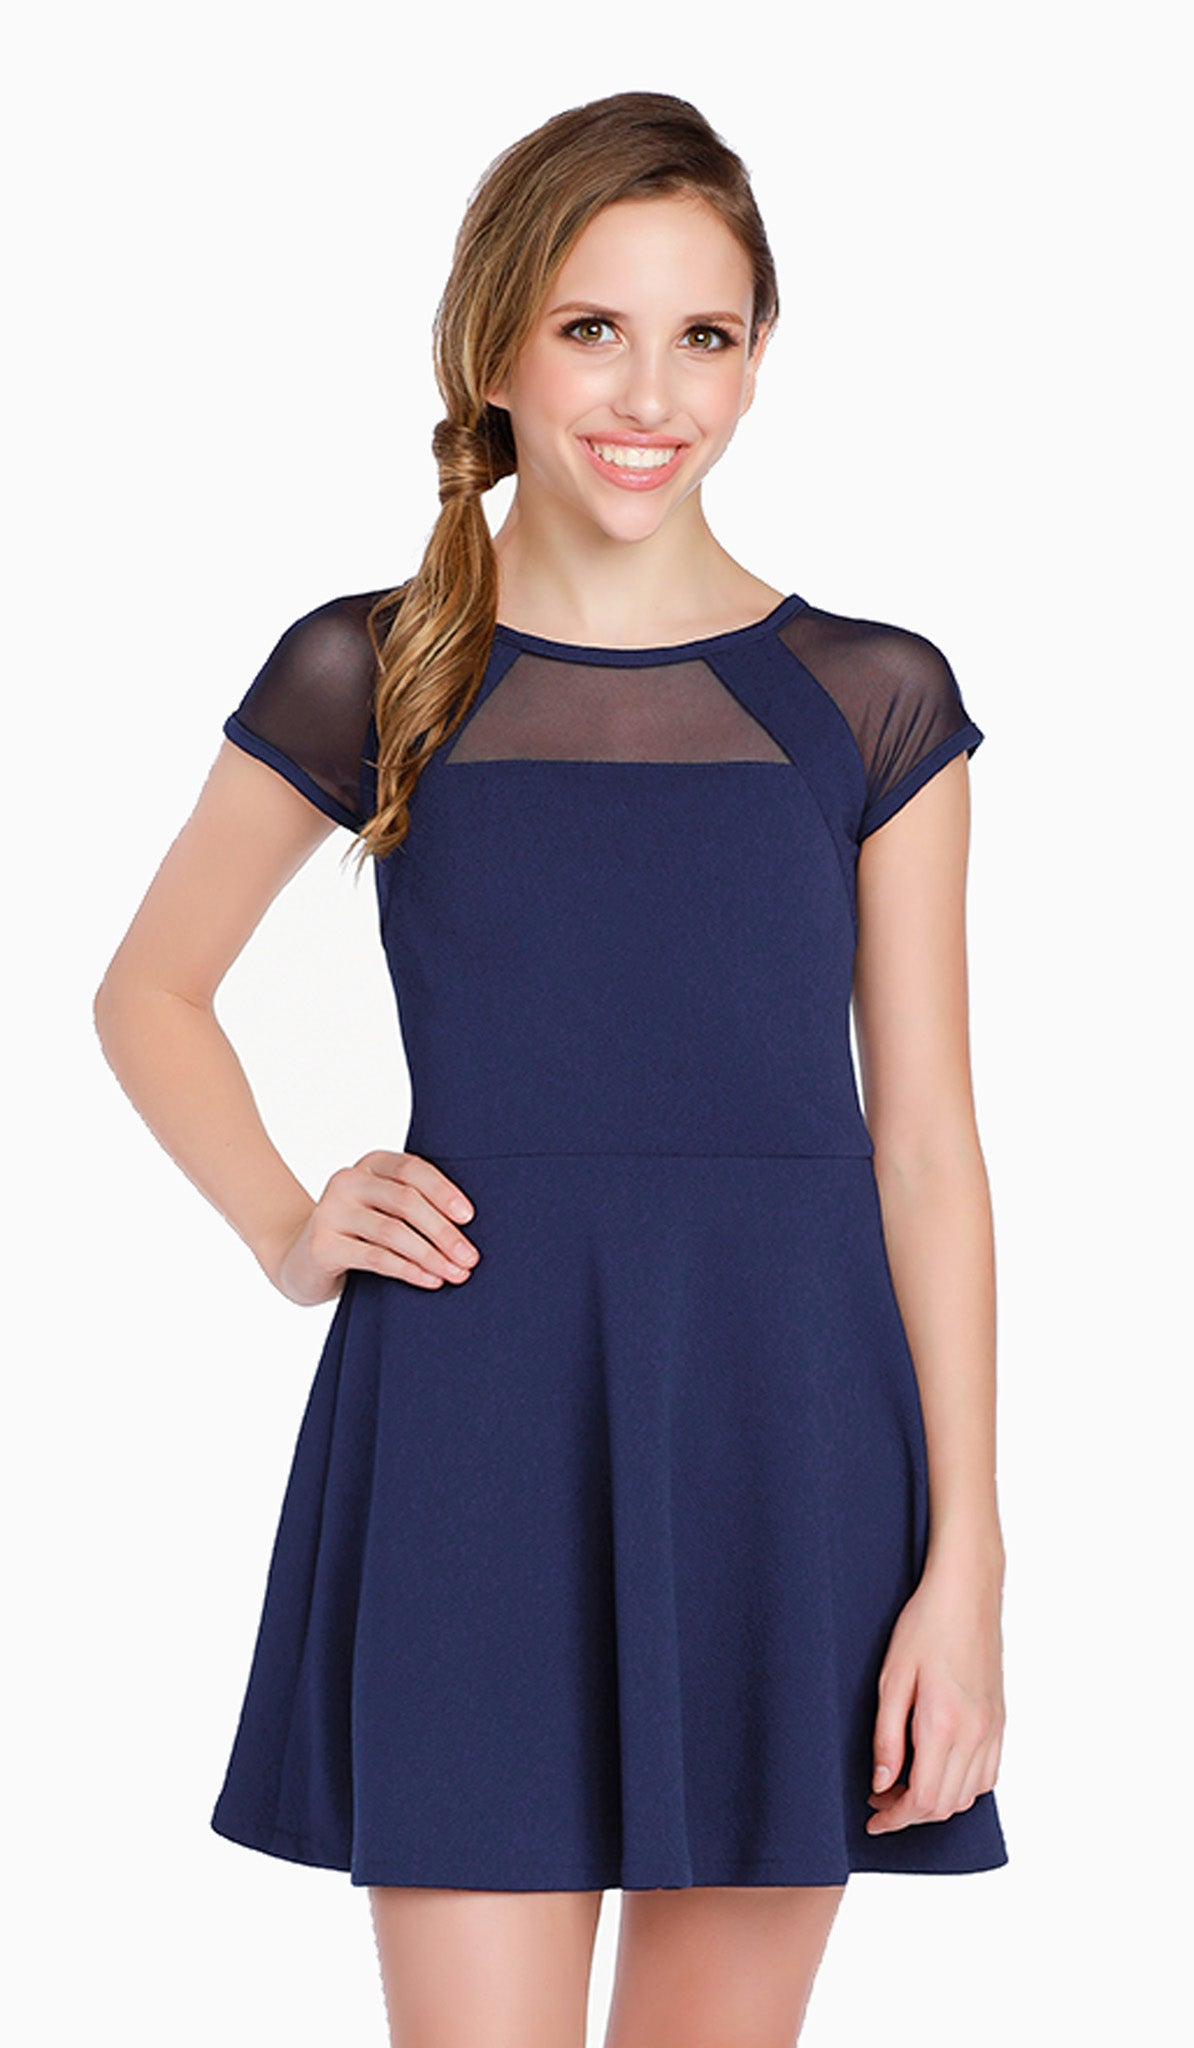 525c4fd6abdb8 The Sally Miller Shea Dress - Navy textured stretch knit fit and flare dress  with mesh